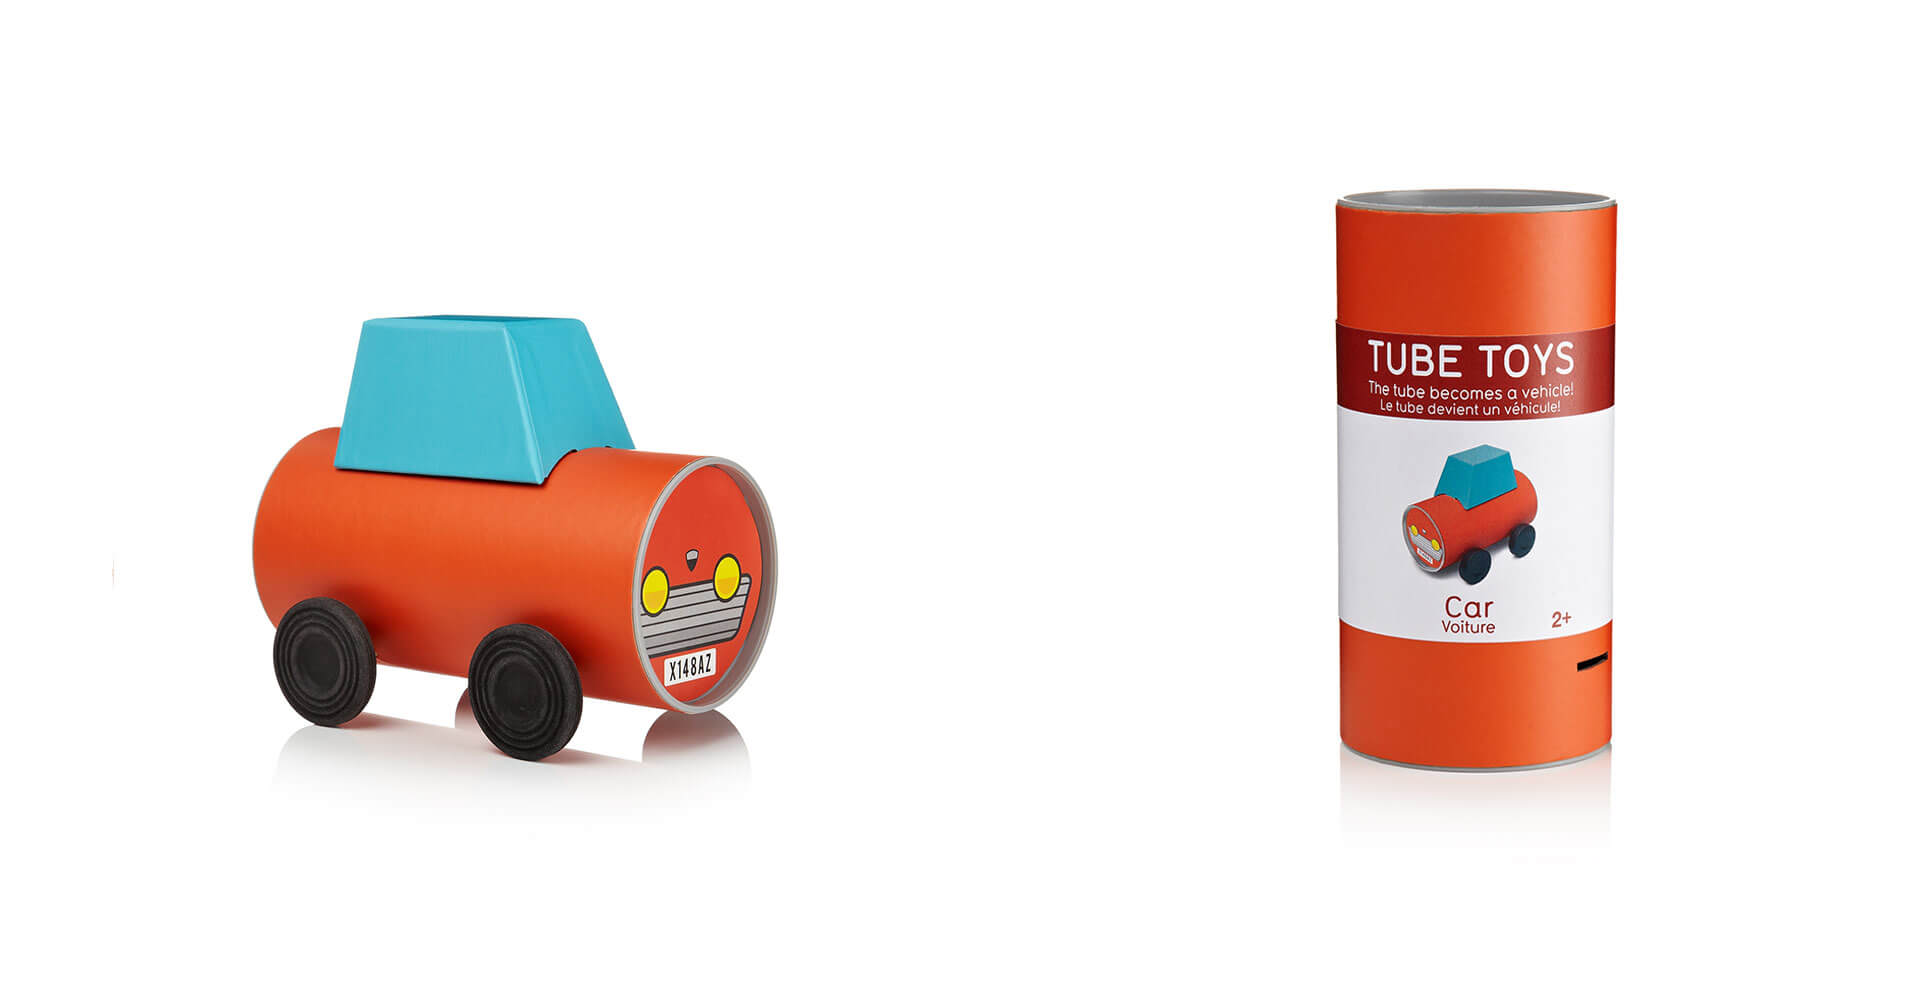 Tube-Toys_Car_Oscar-Diaz_car